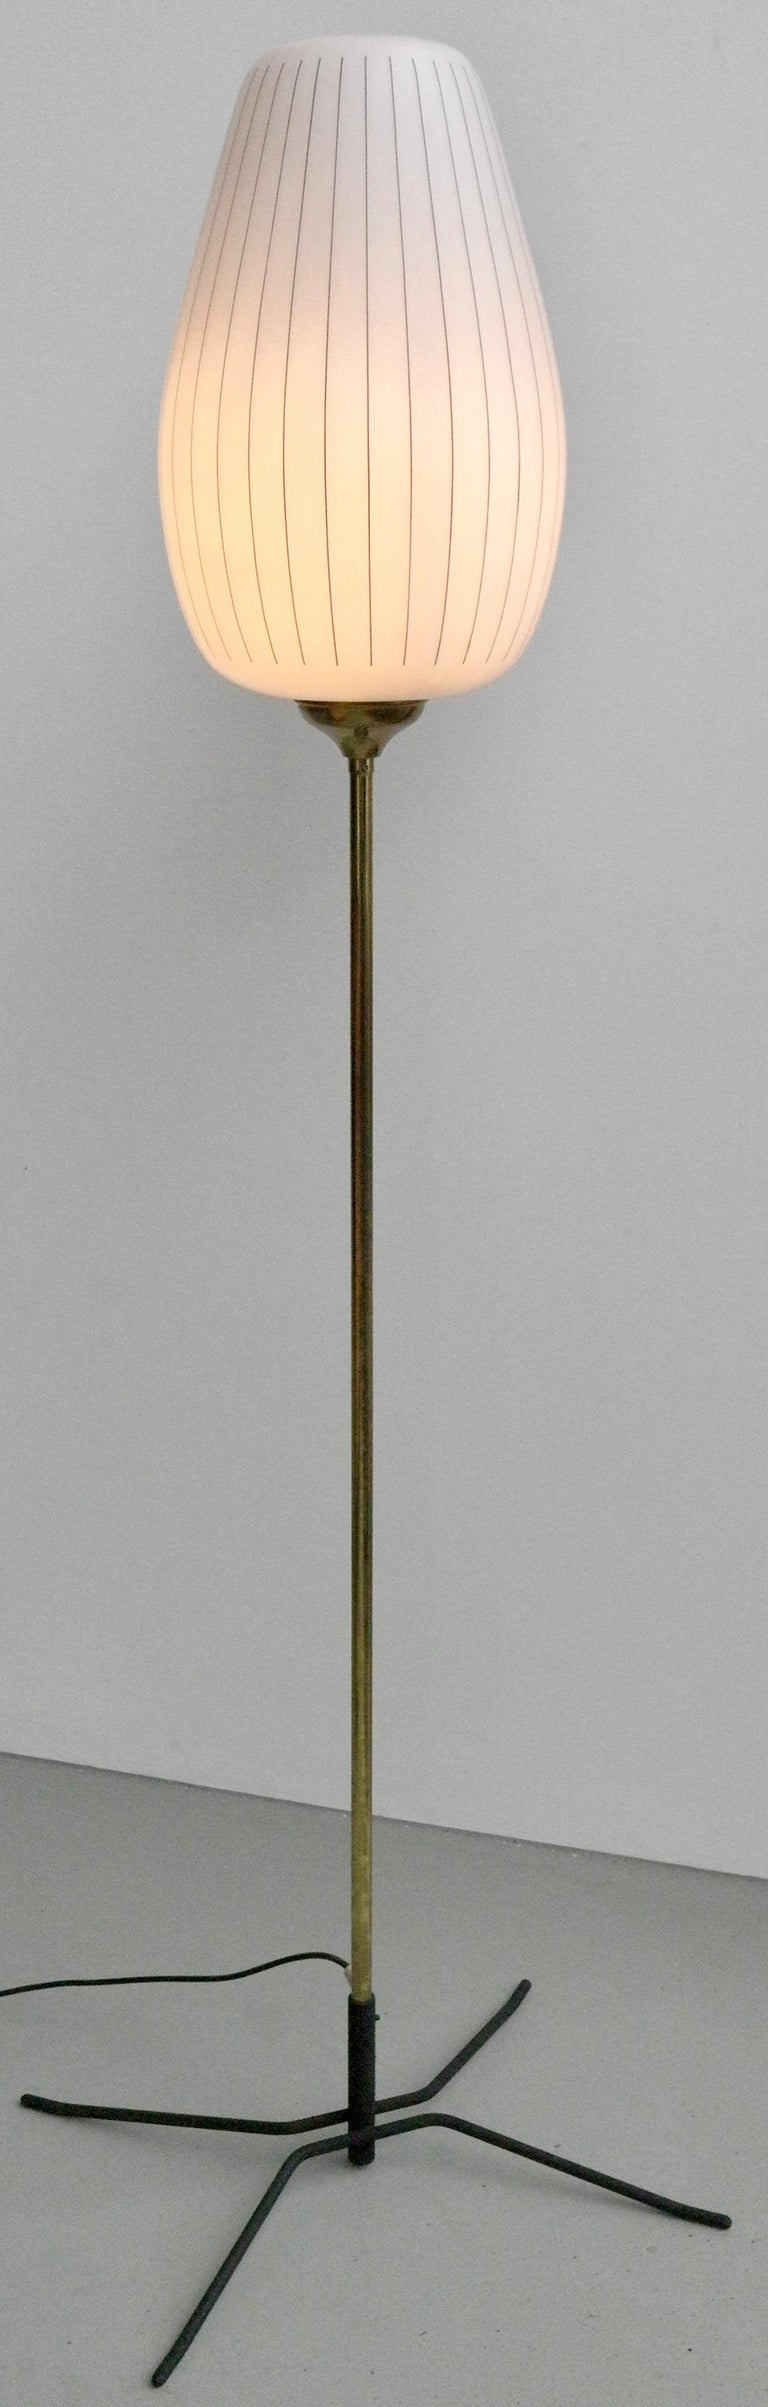 Striped Opaline Glass and Brass Floorlamp, Italy, 1950s For Sale 5